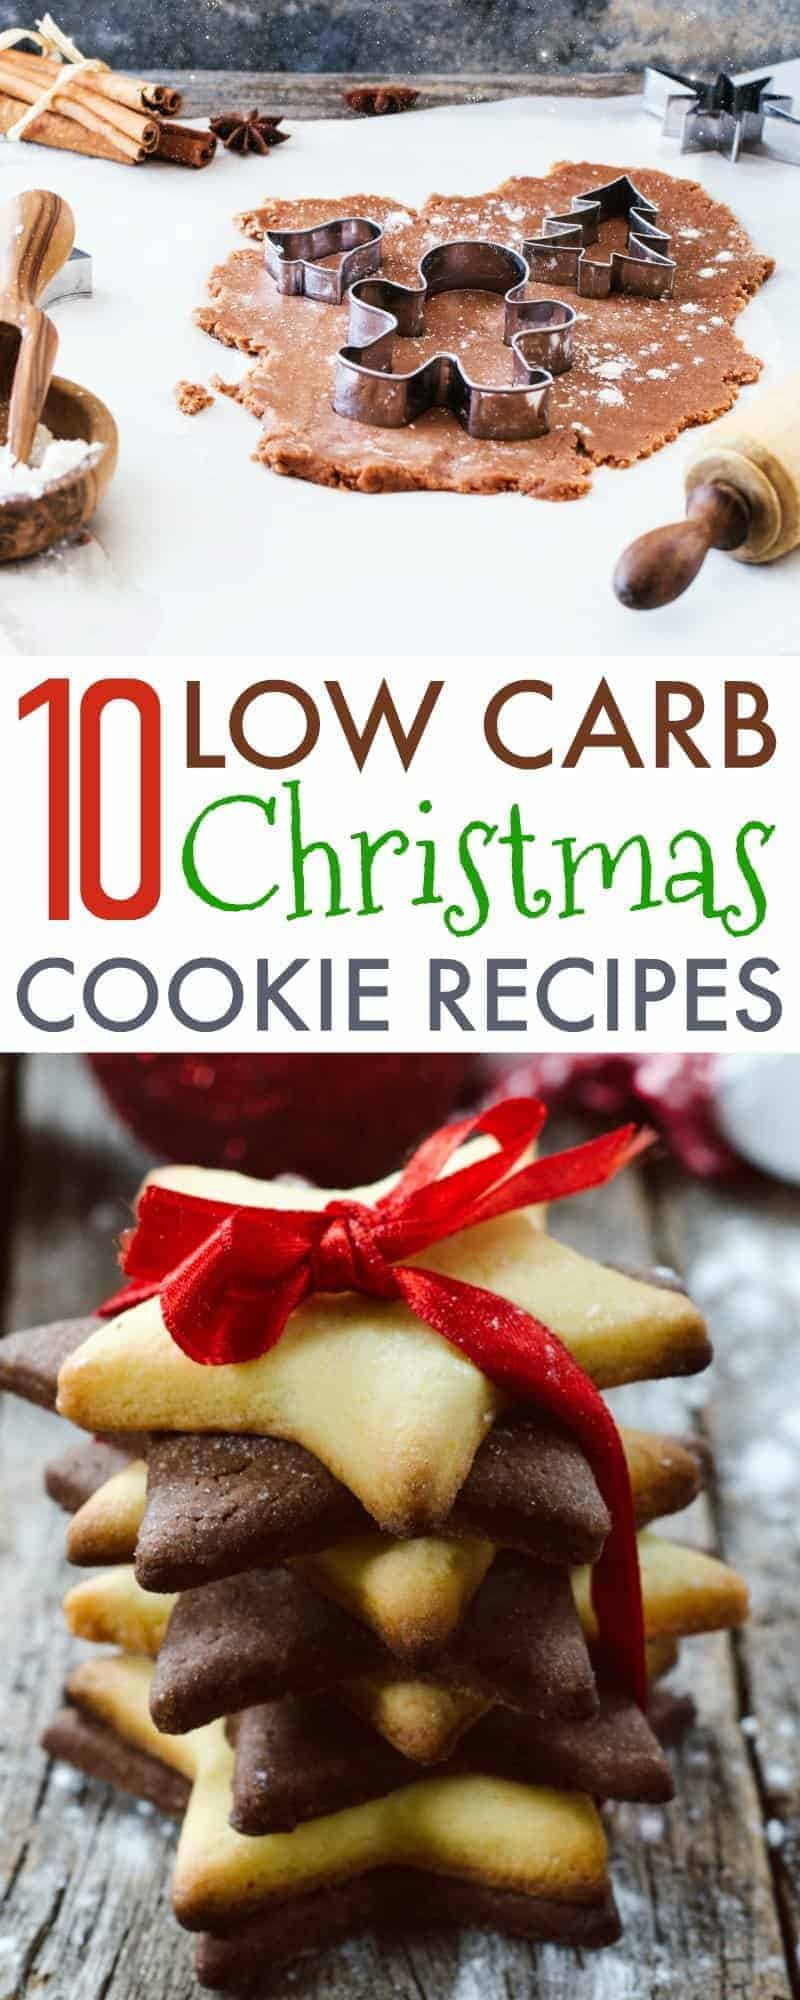 You can enjoy delicious treats for the holidays when you follow a low carb diet, these 10 delicious low carb Christmas cookies recipes are proof of that!